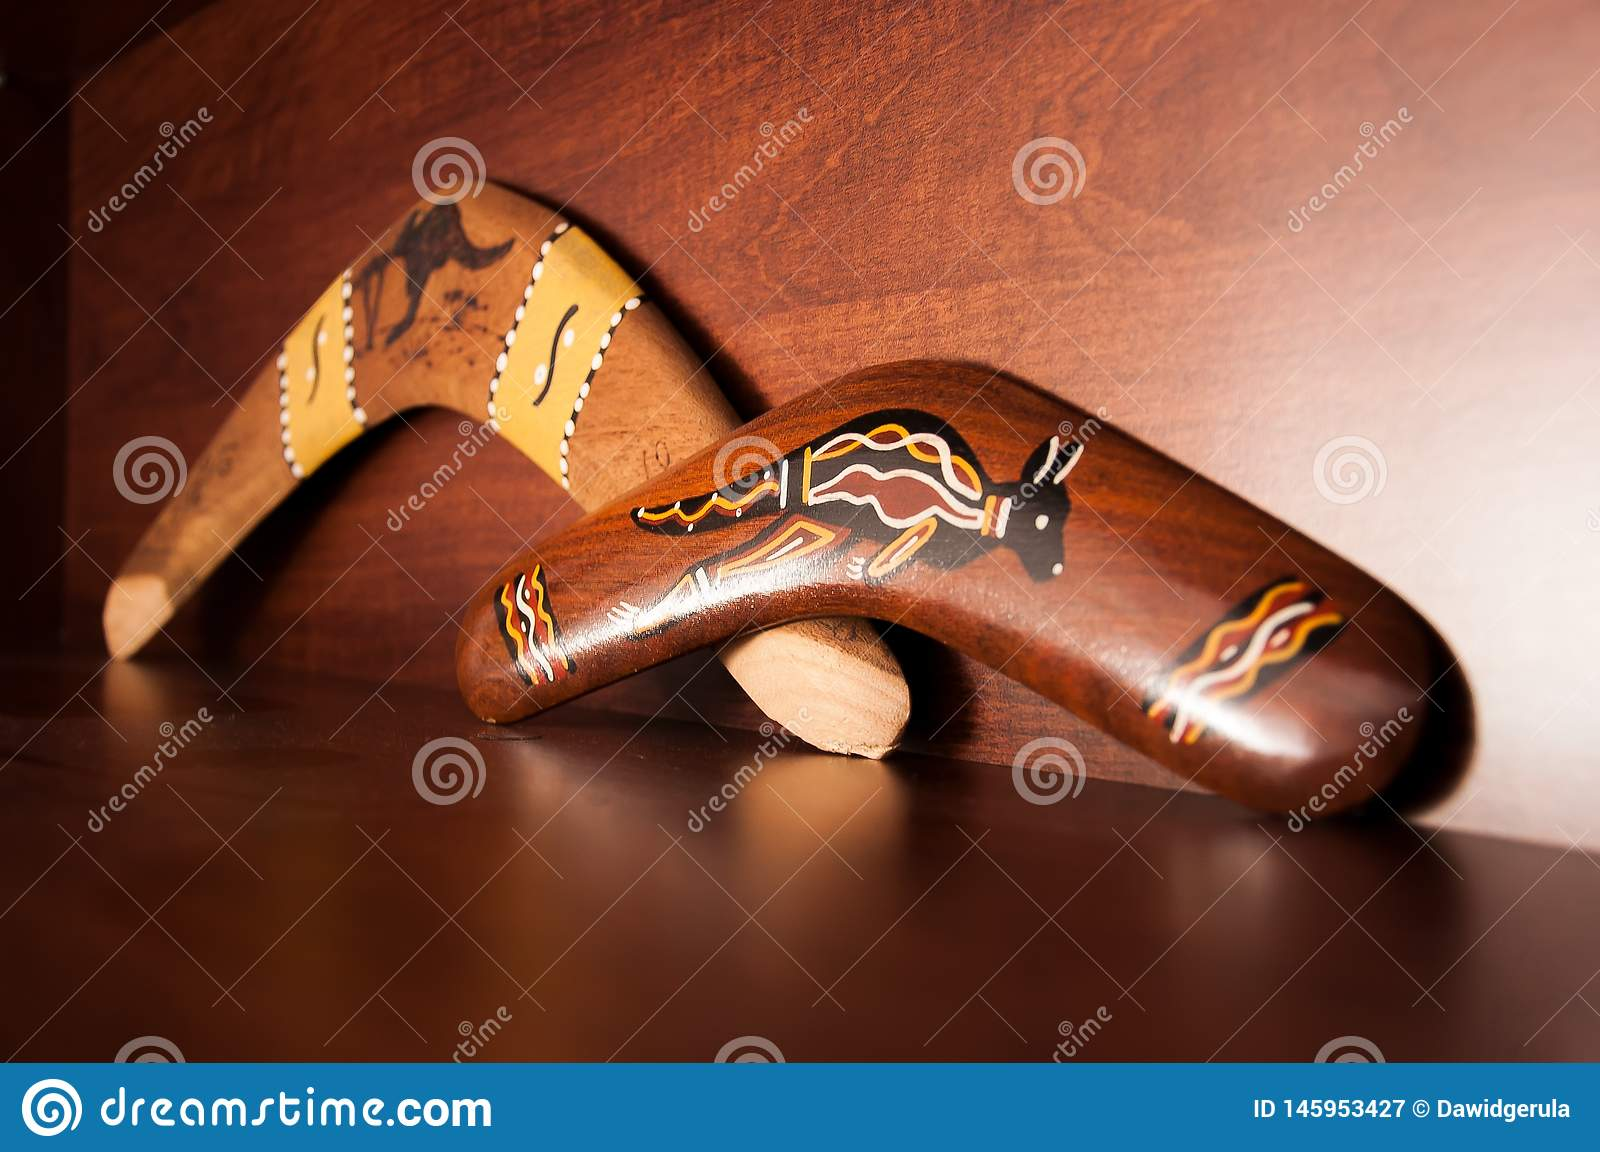 Australian boomerangs seen from the side, lying on the vintage brown shelf. Souvenirs from Australia on display in the living room